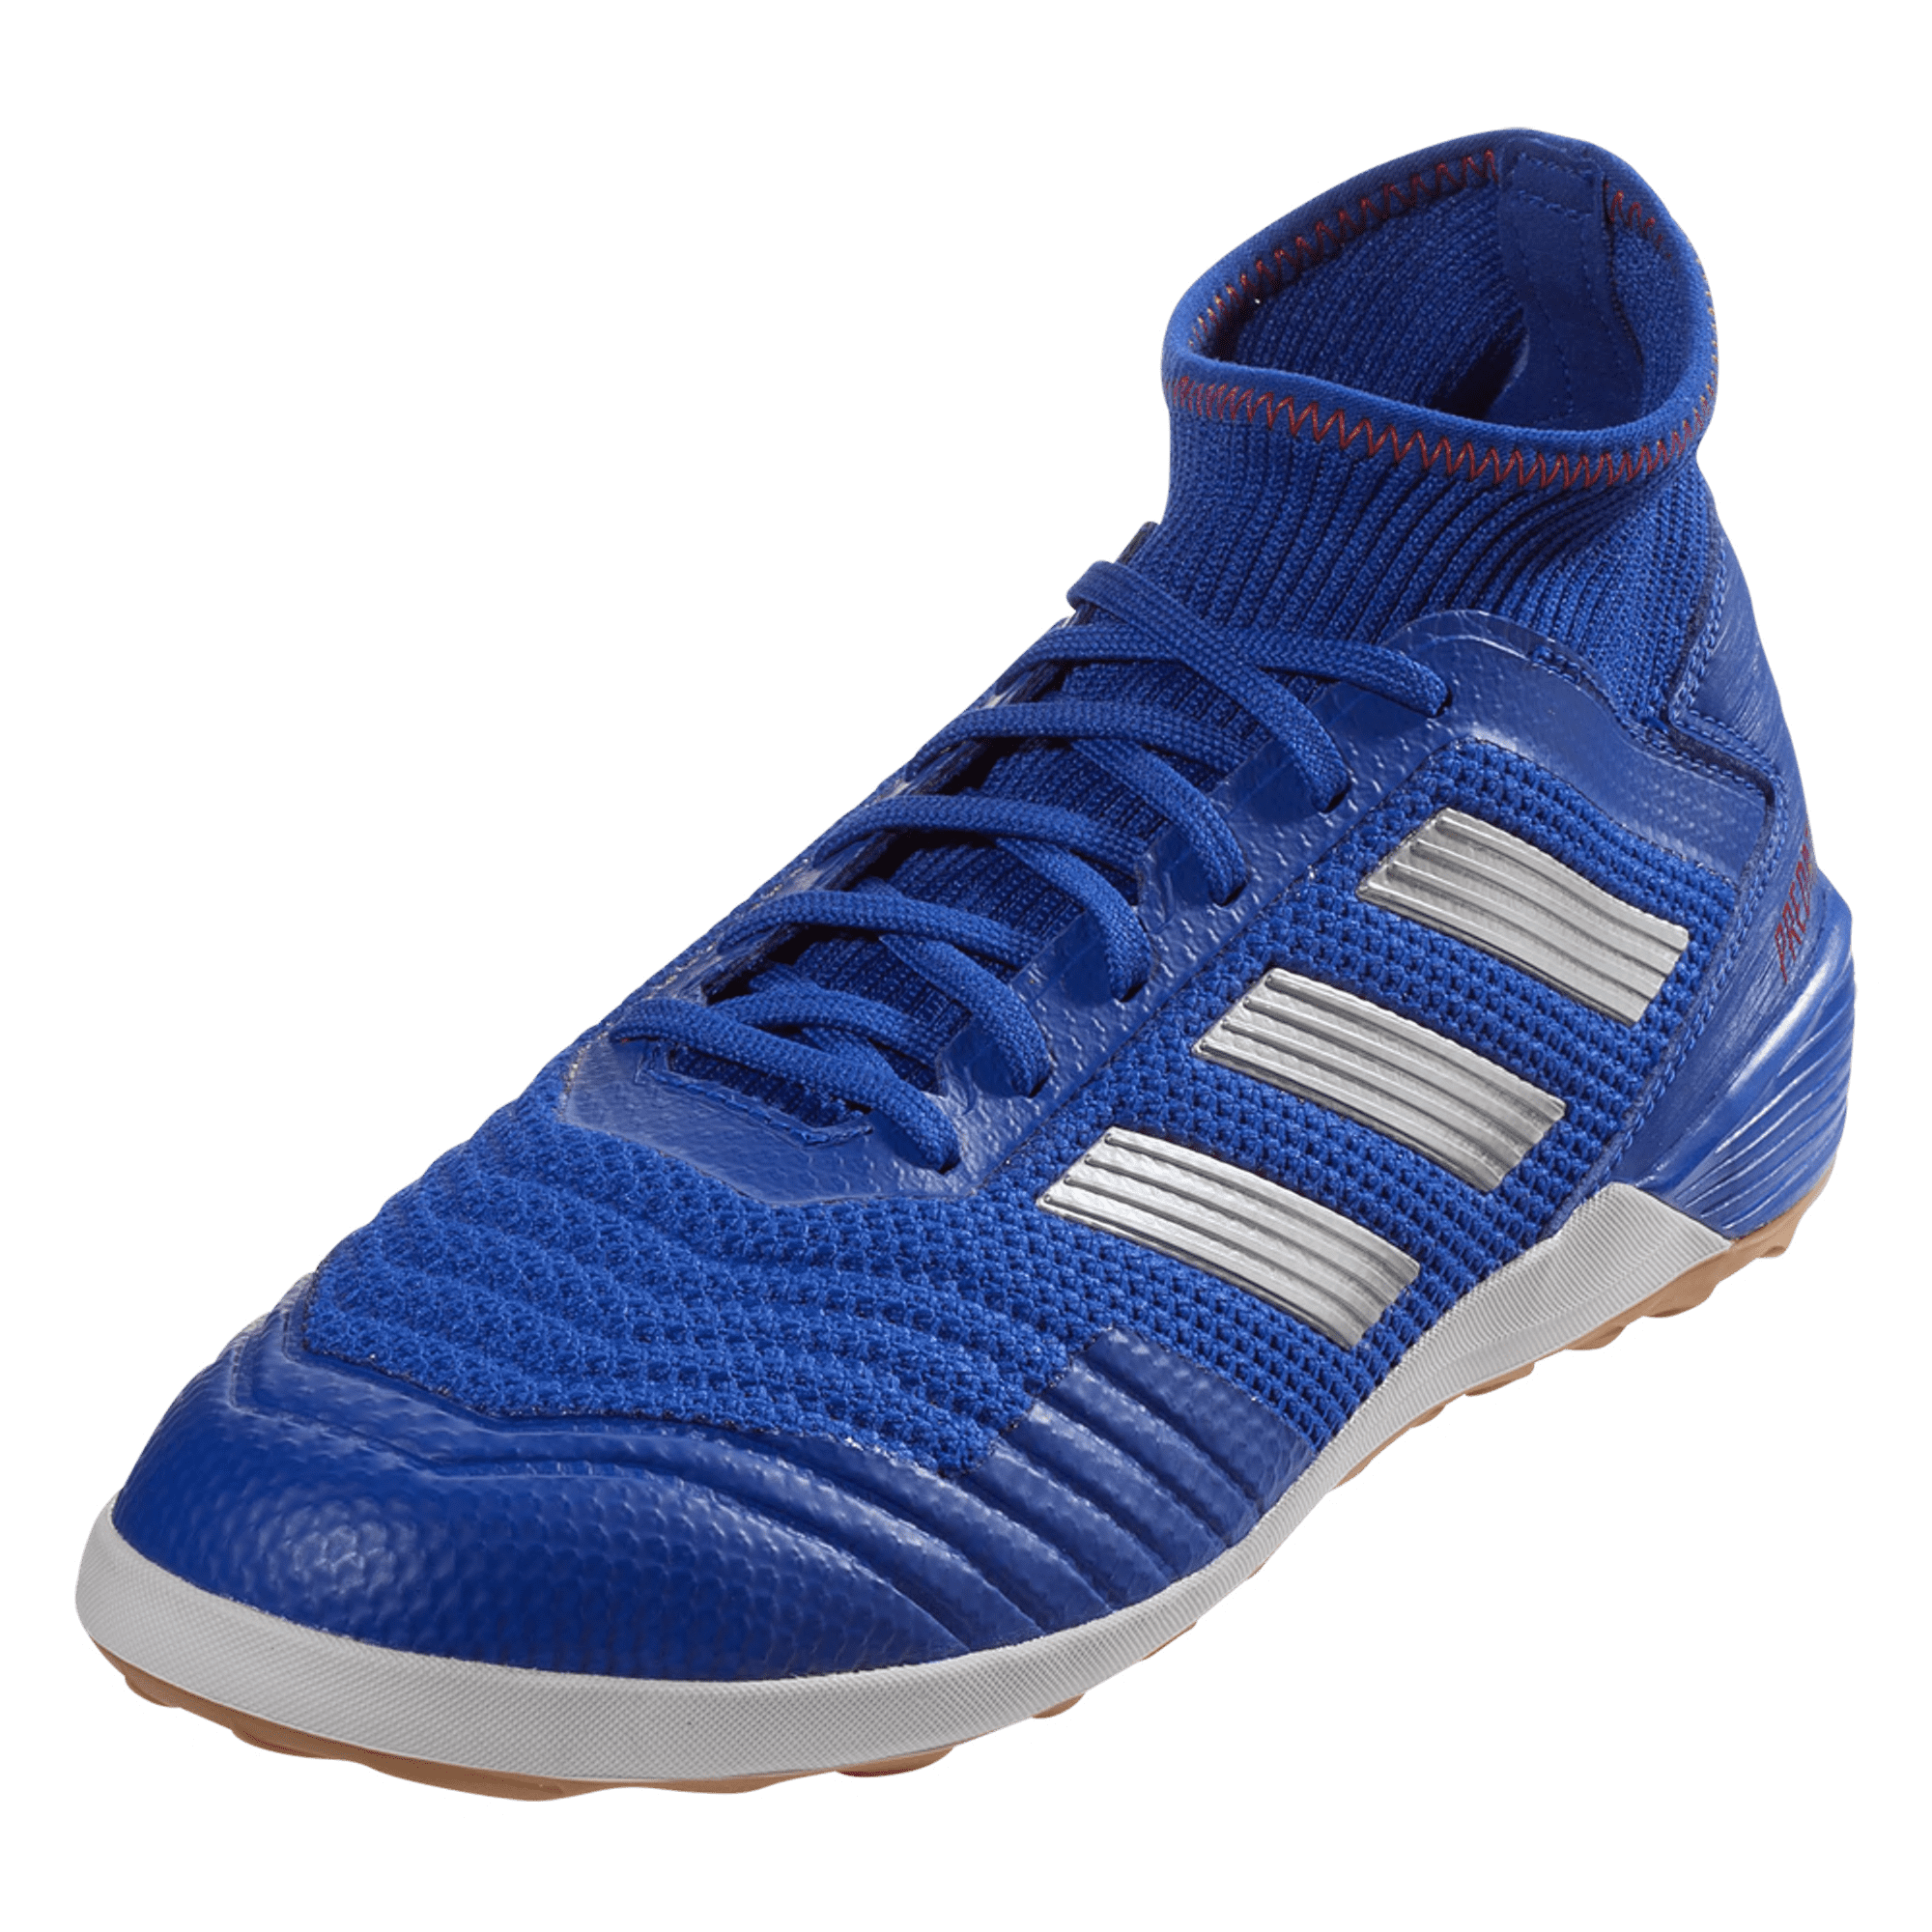 adidas Predator Tango 19.3 IN Indoor Soccer Shoe - Blue/Silver/Red